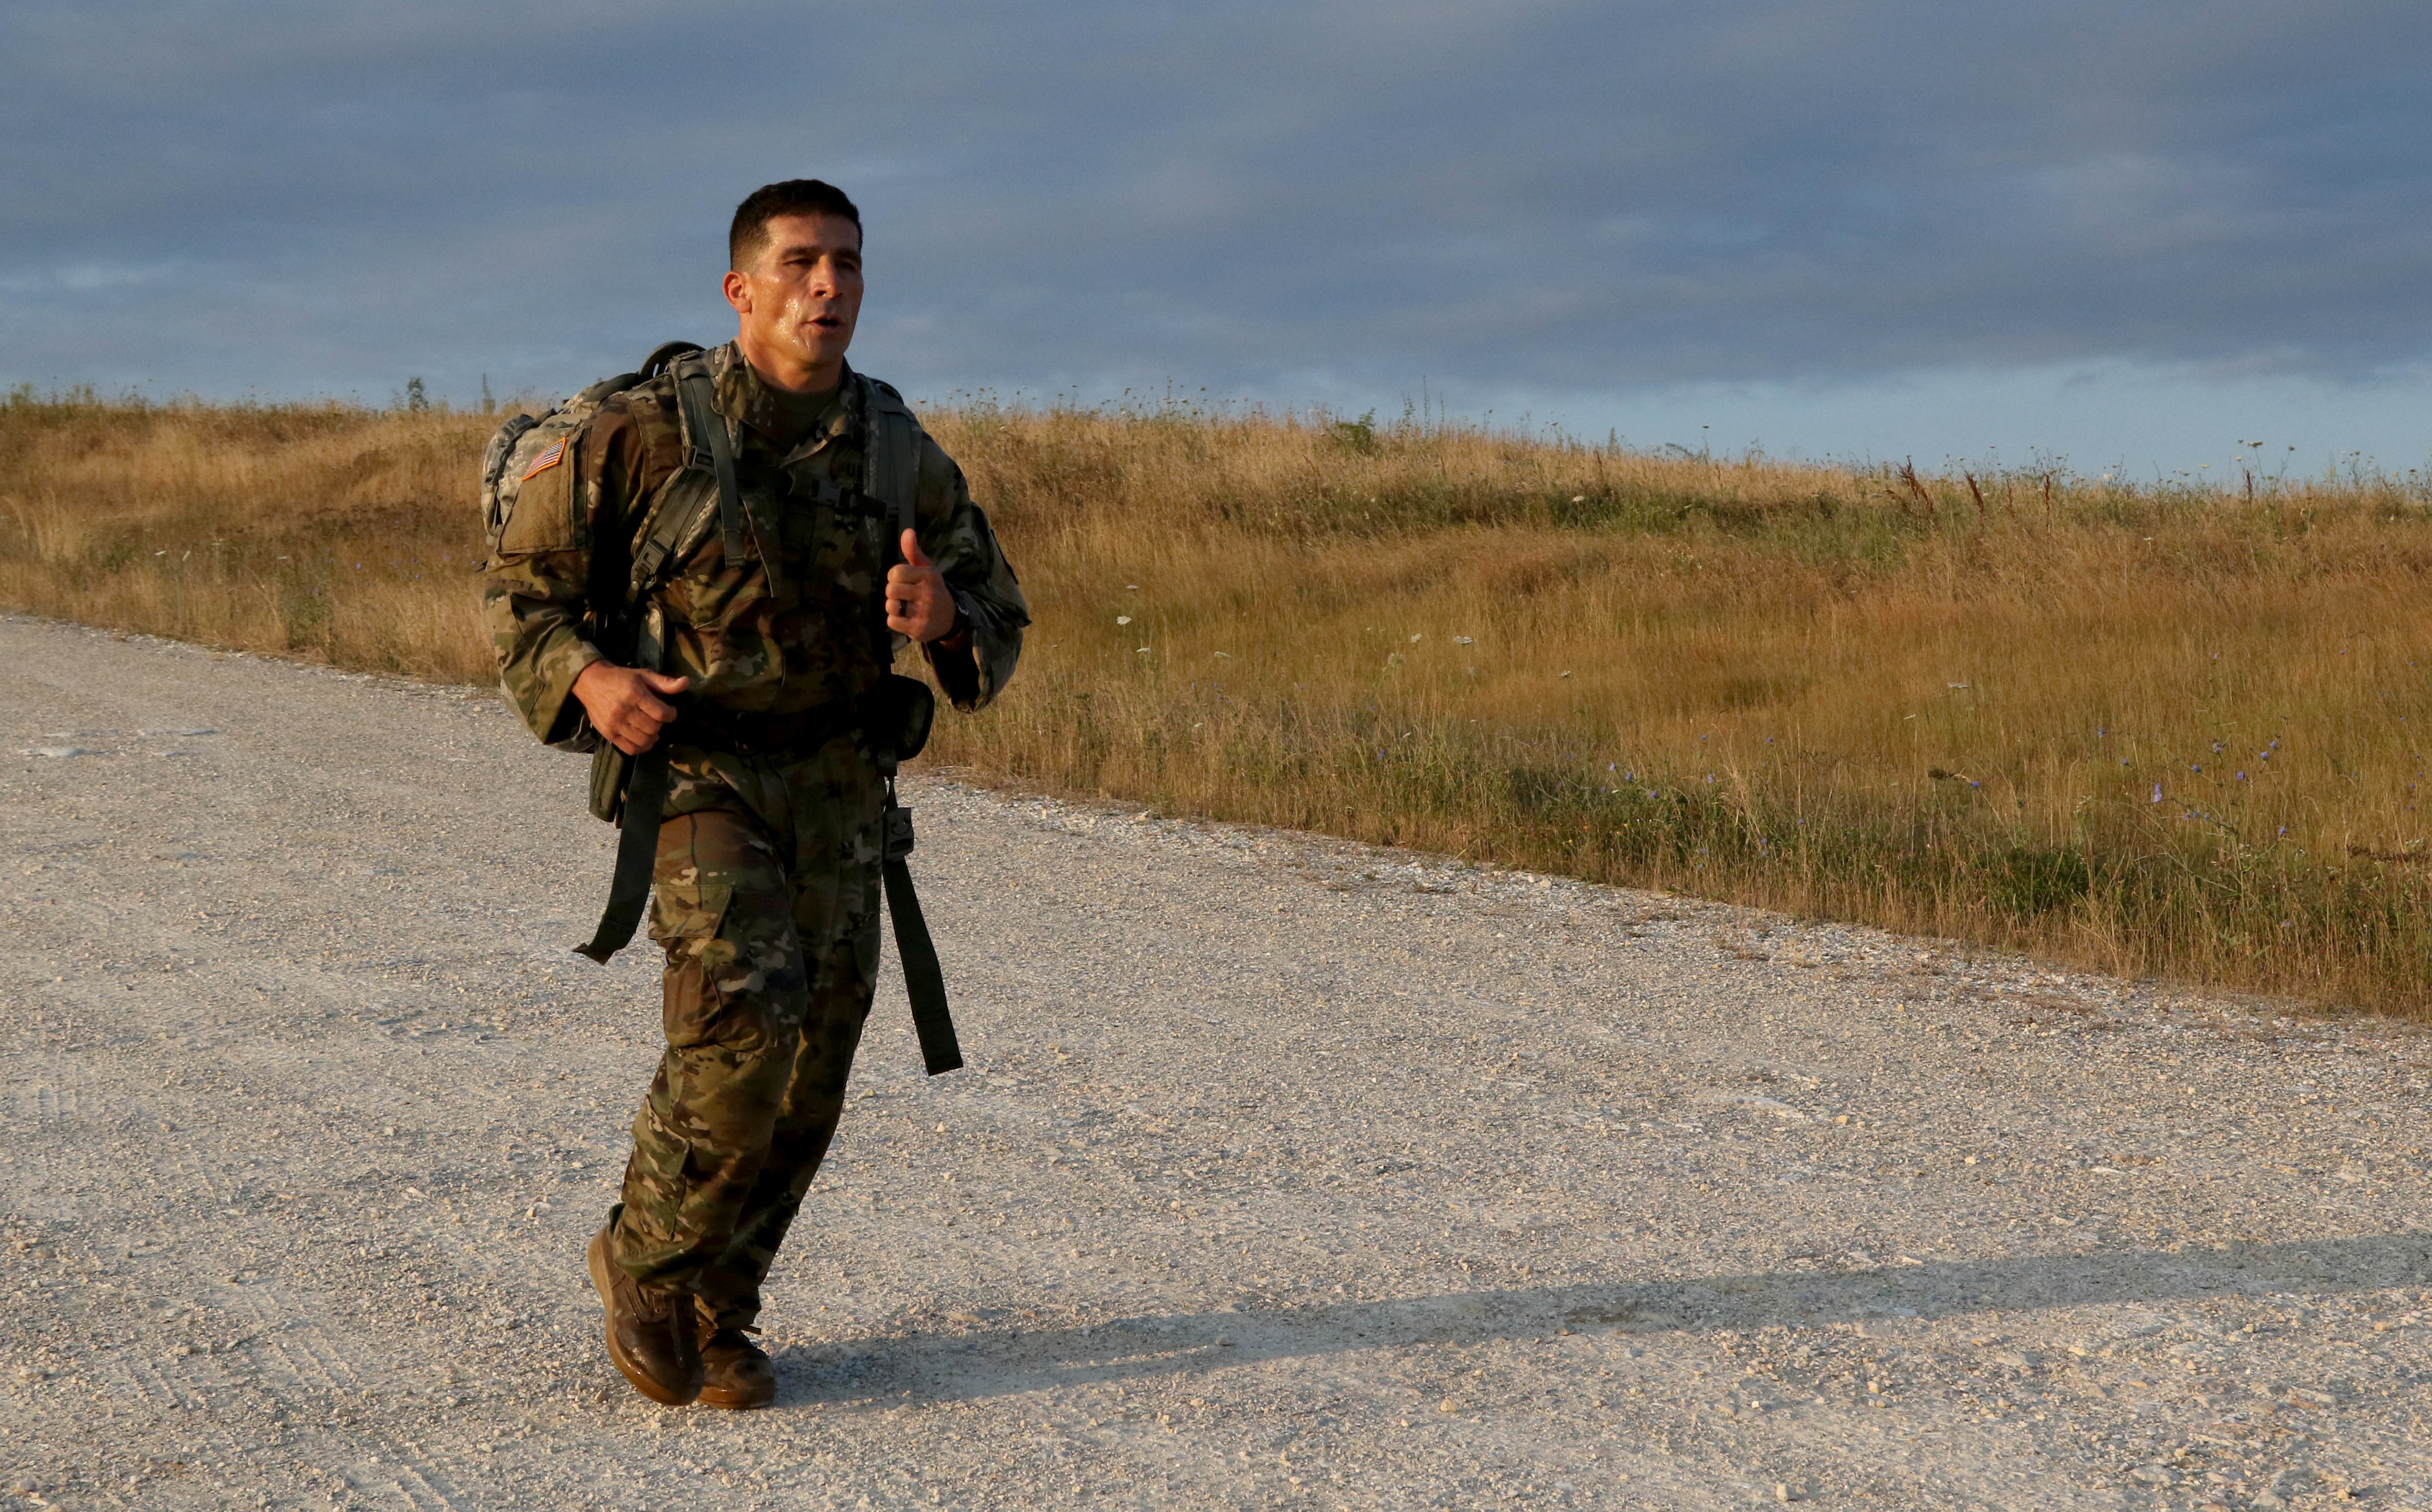 Staff Sgt. Oscar Morales, an infantryman and Arizona Army National Guardsman assigned to the 2nd Assault Helicopter Battalion, 285th Aviation Regiment, conducts a 12-mile ruck march on Camp Bondsteel, Kosovo, during the Multinational Battle Group-East's Best Warrior Competition July 10. (U.S. Army photo by: Staff Sgt. Thomas Duval, Multinational Battle Group-East Public Affairs)